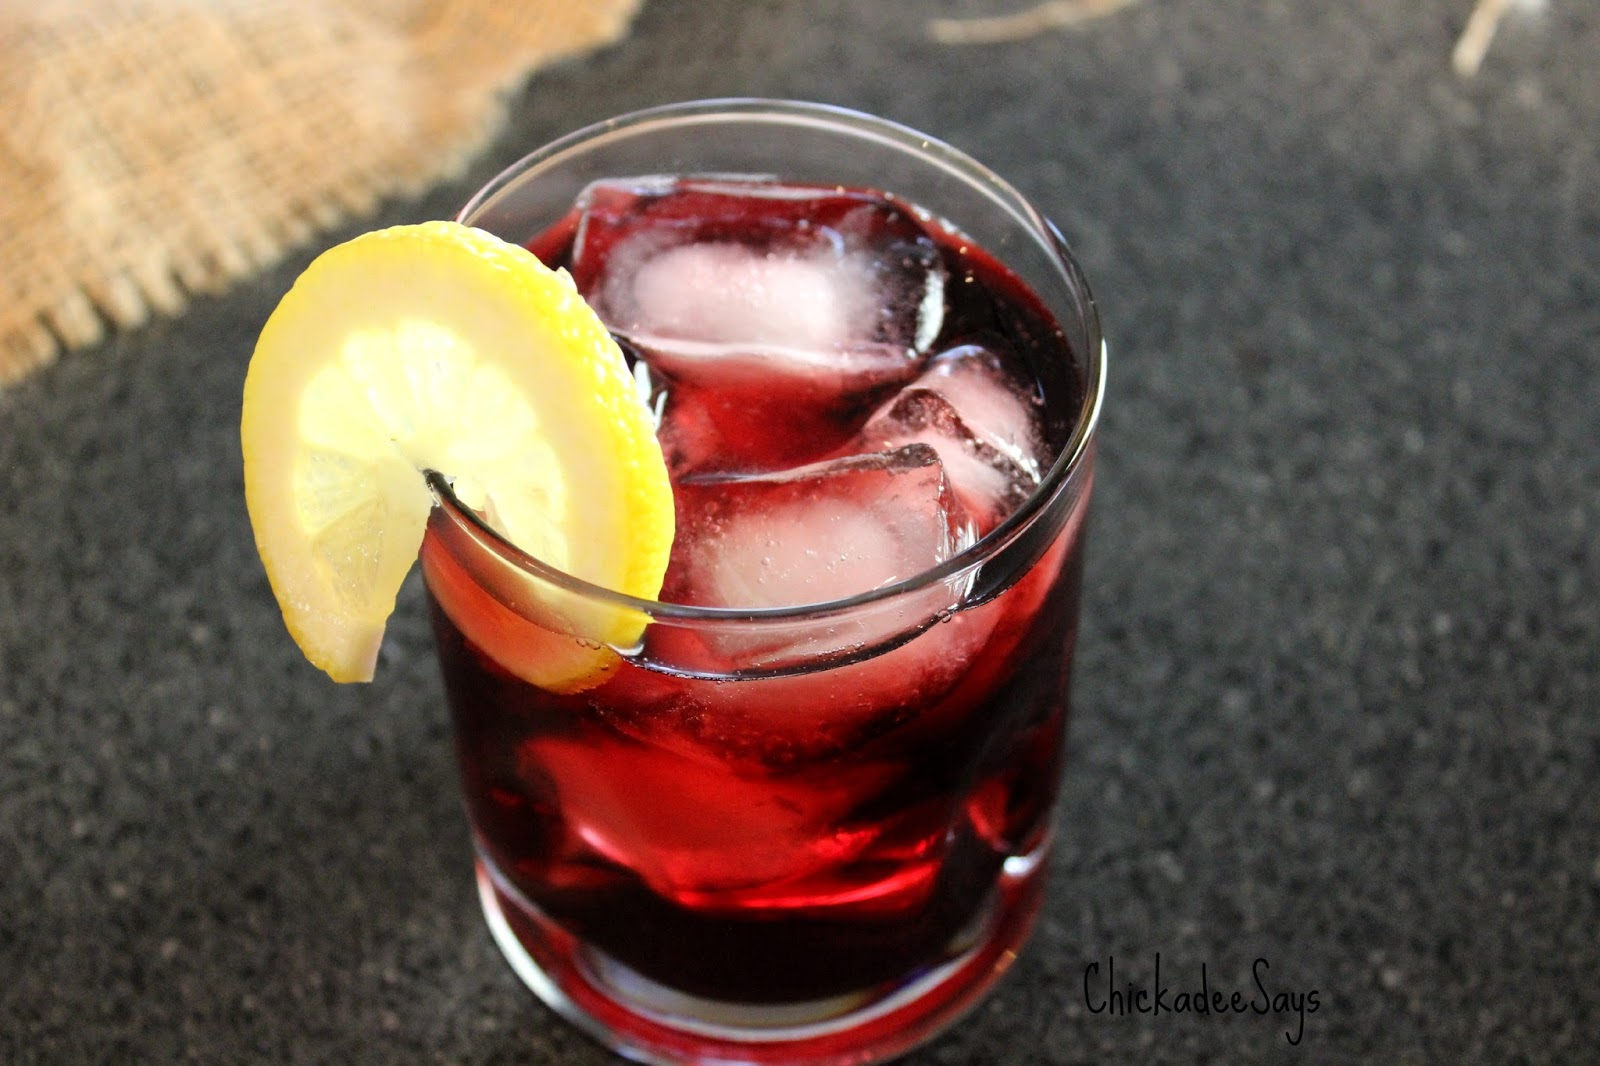 Chickadee Says: Summer Drink Series: Blackberry-Orange Gin and Tonic